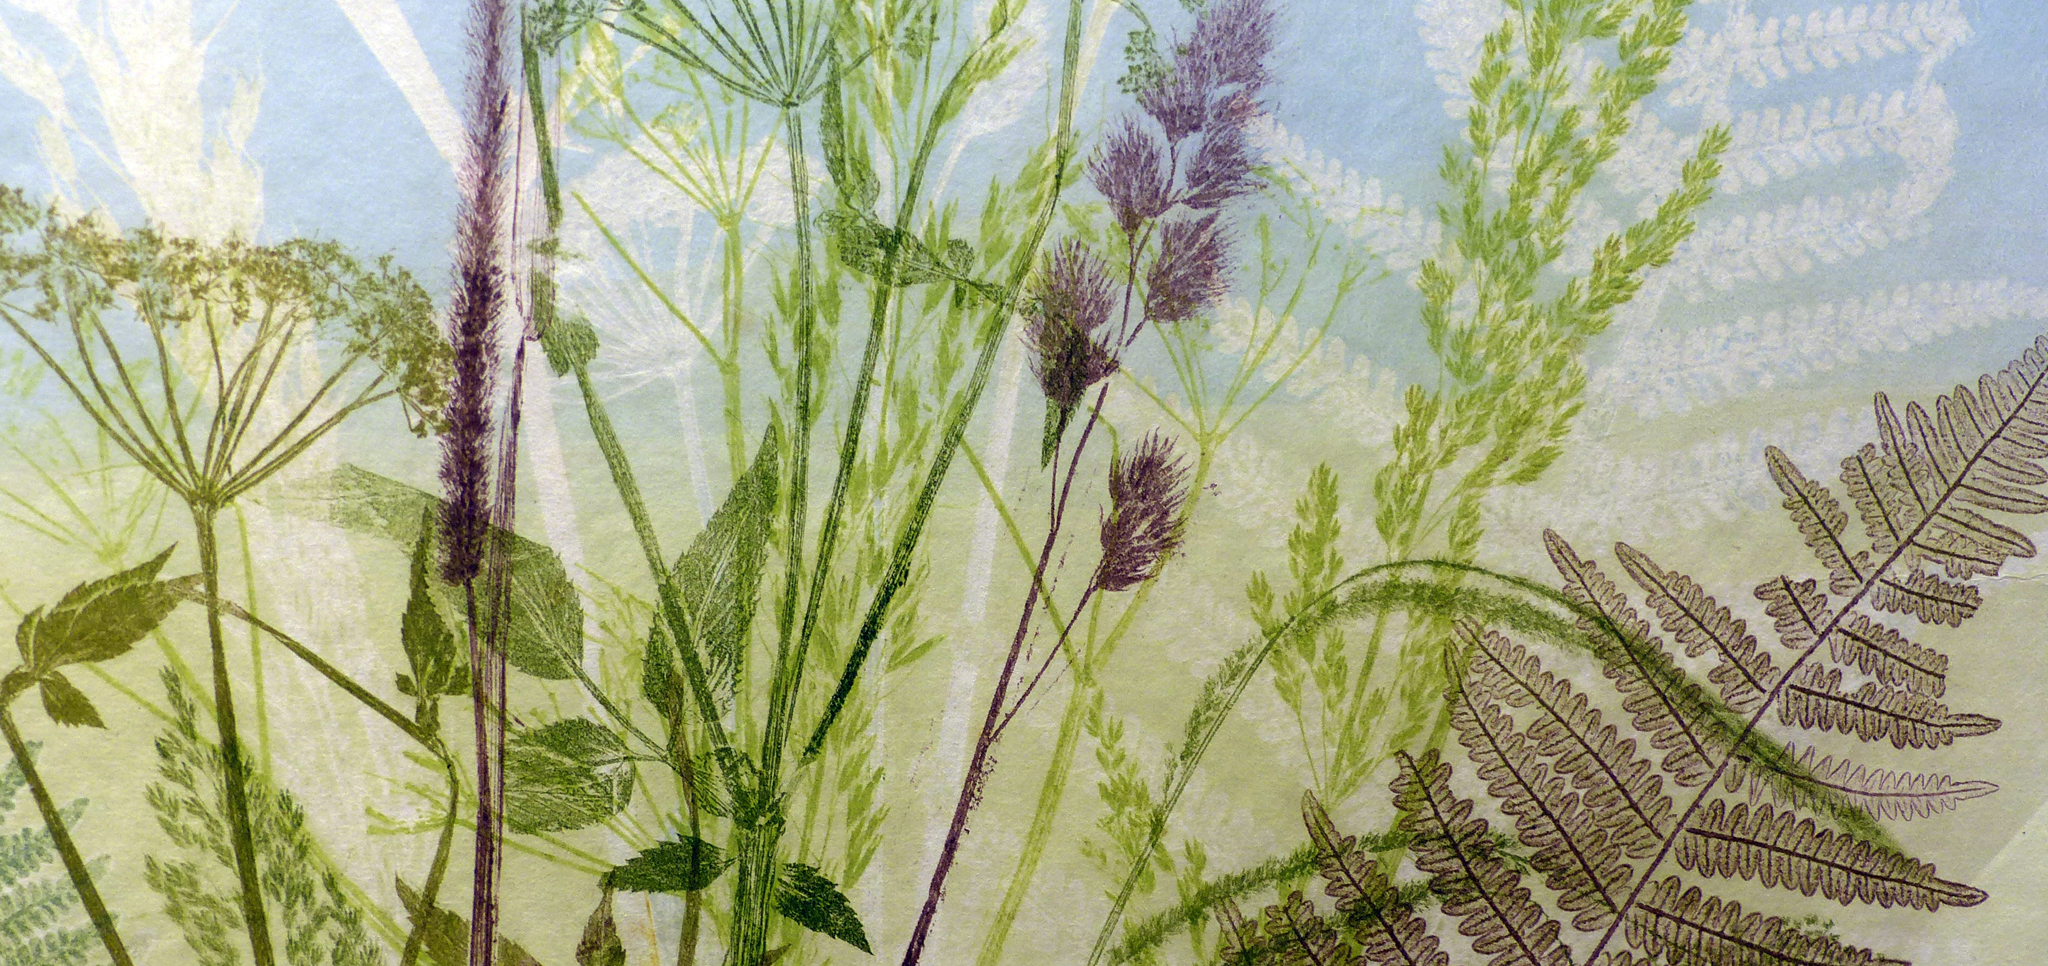 Multicoloured monoprint banner of British wild plants including fern and grasses.